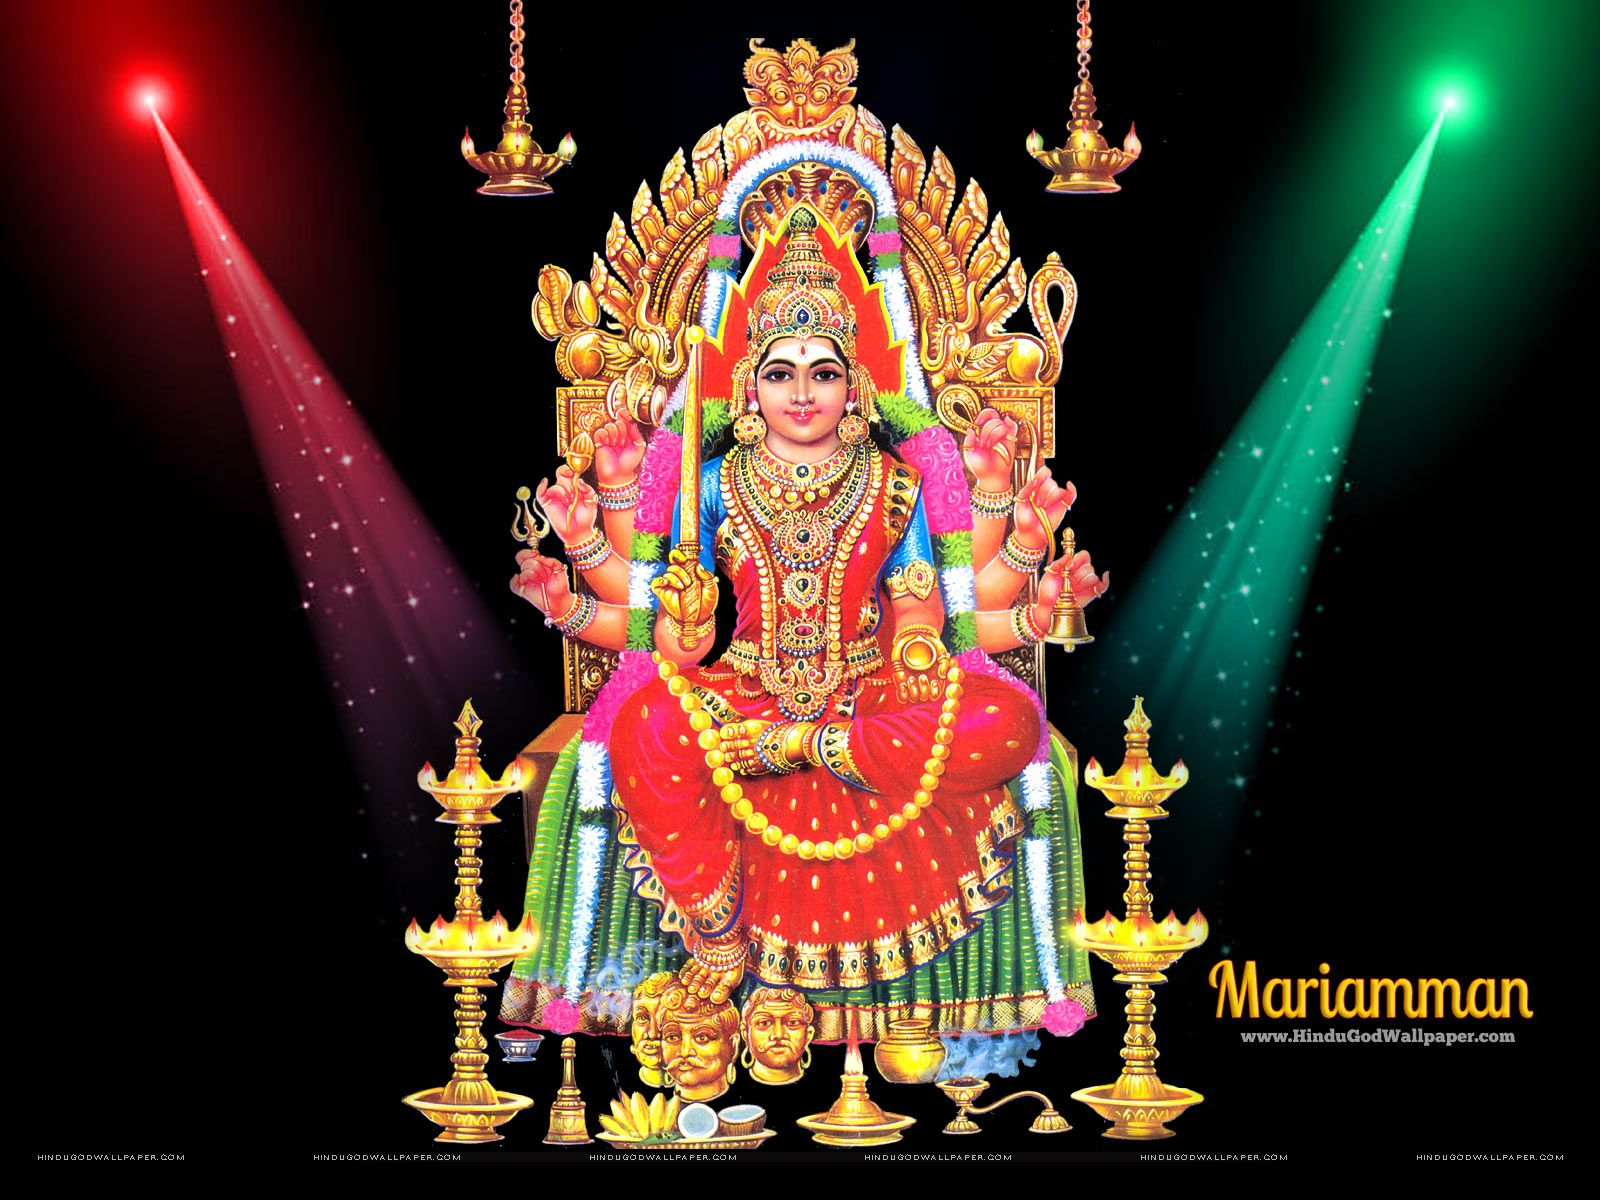 Mariamman Wallpapers Free Download